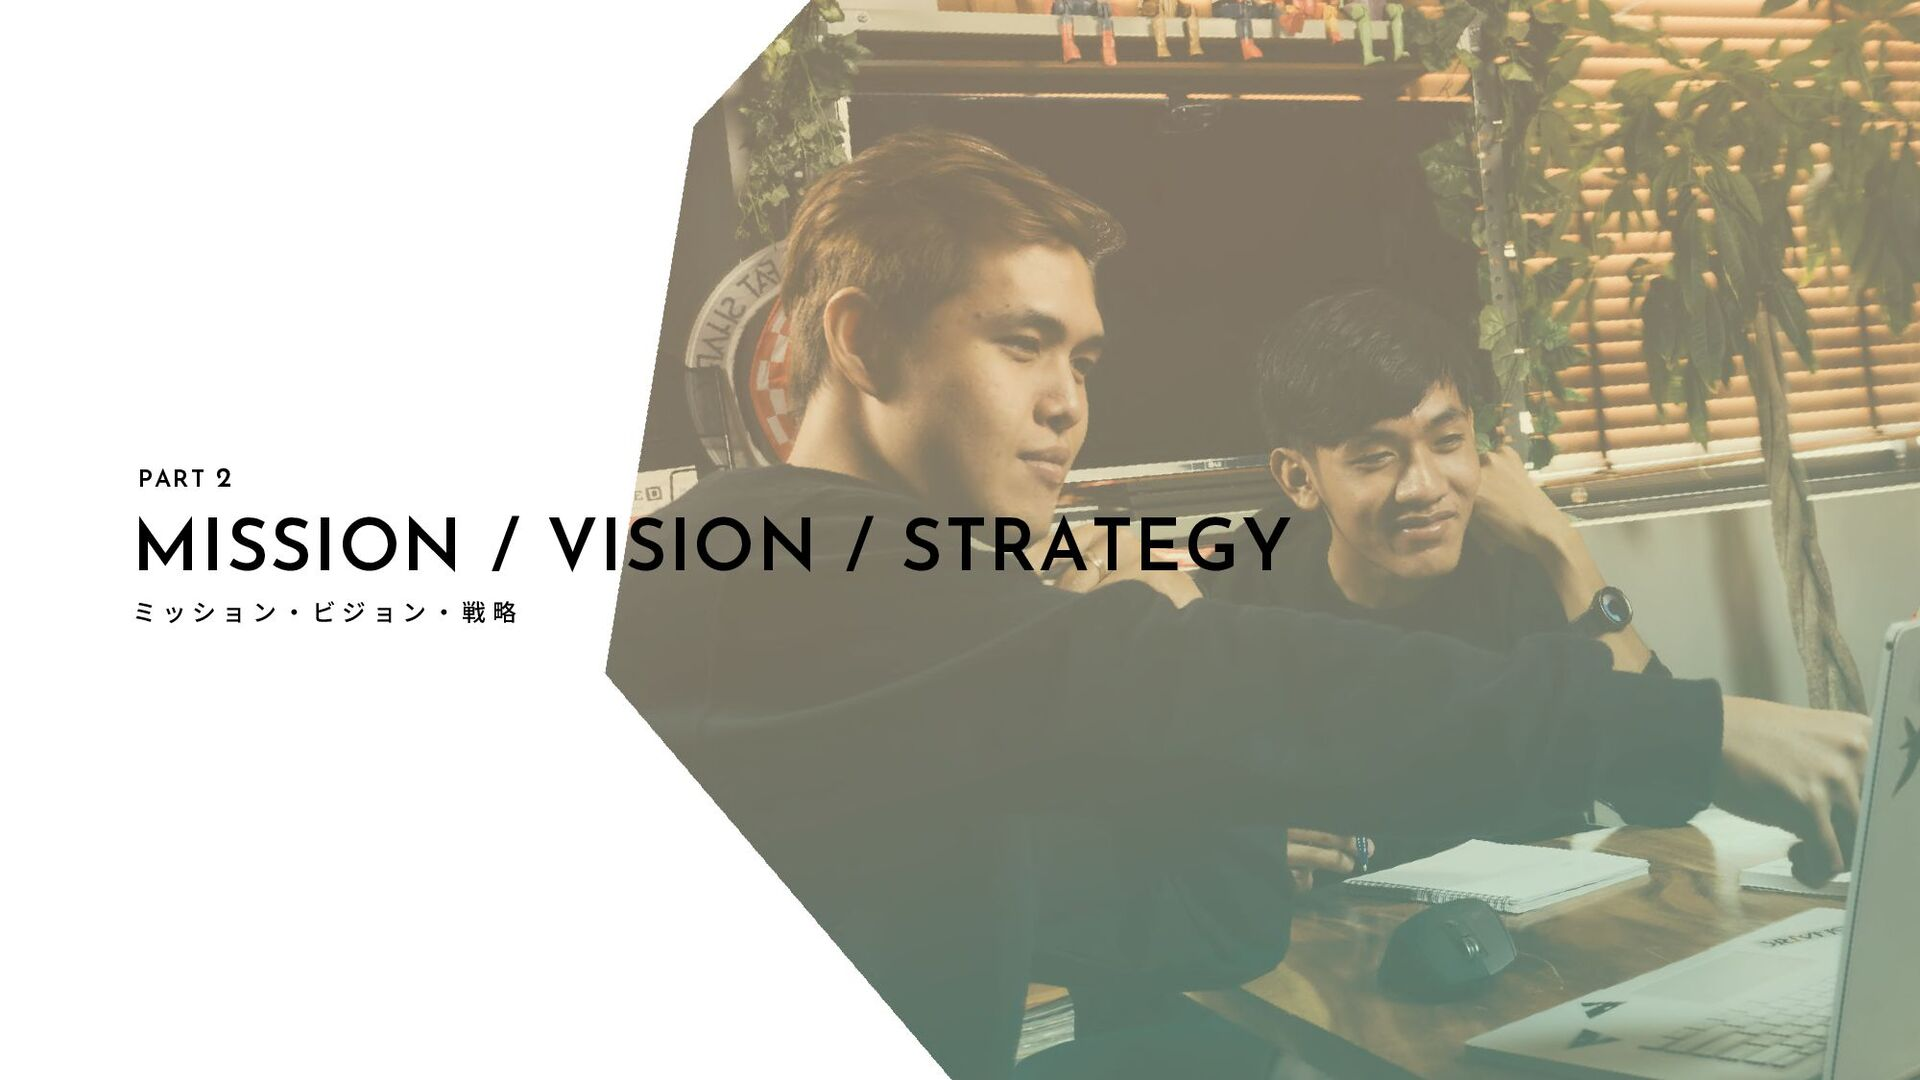 PART 2 MISSION / VISION / STRATEGY